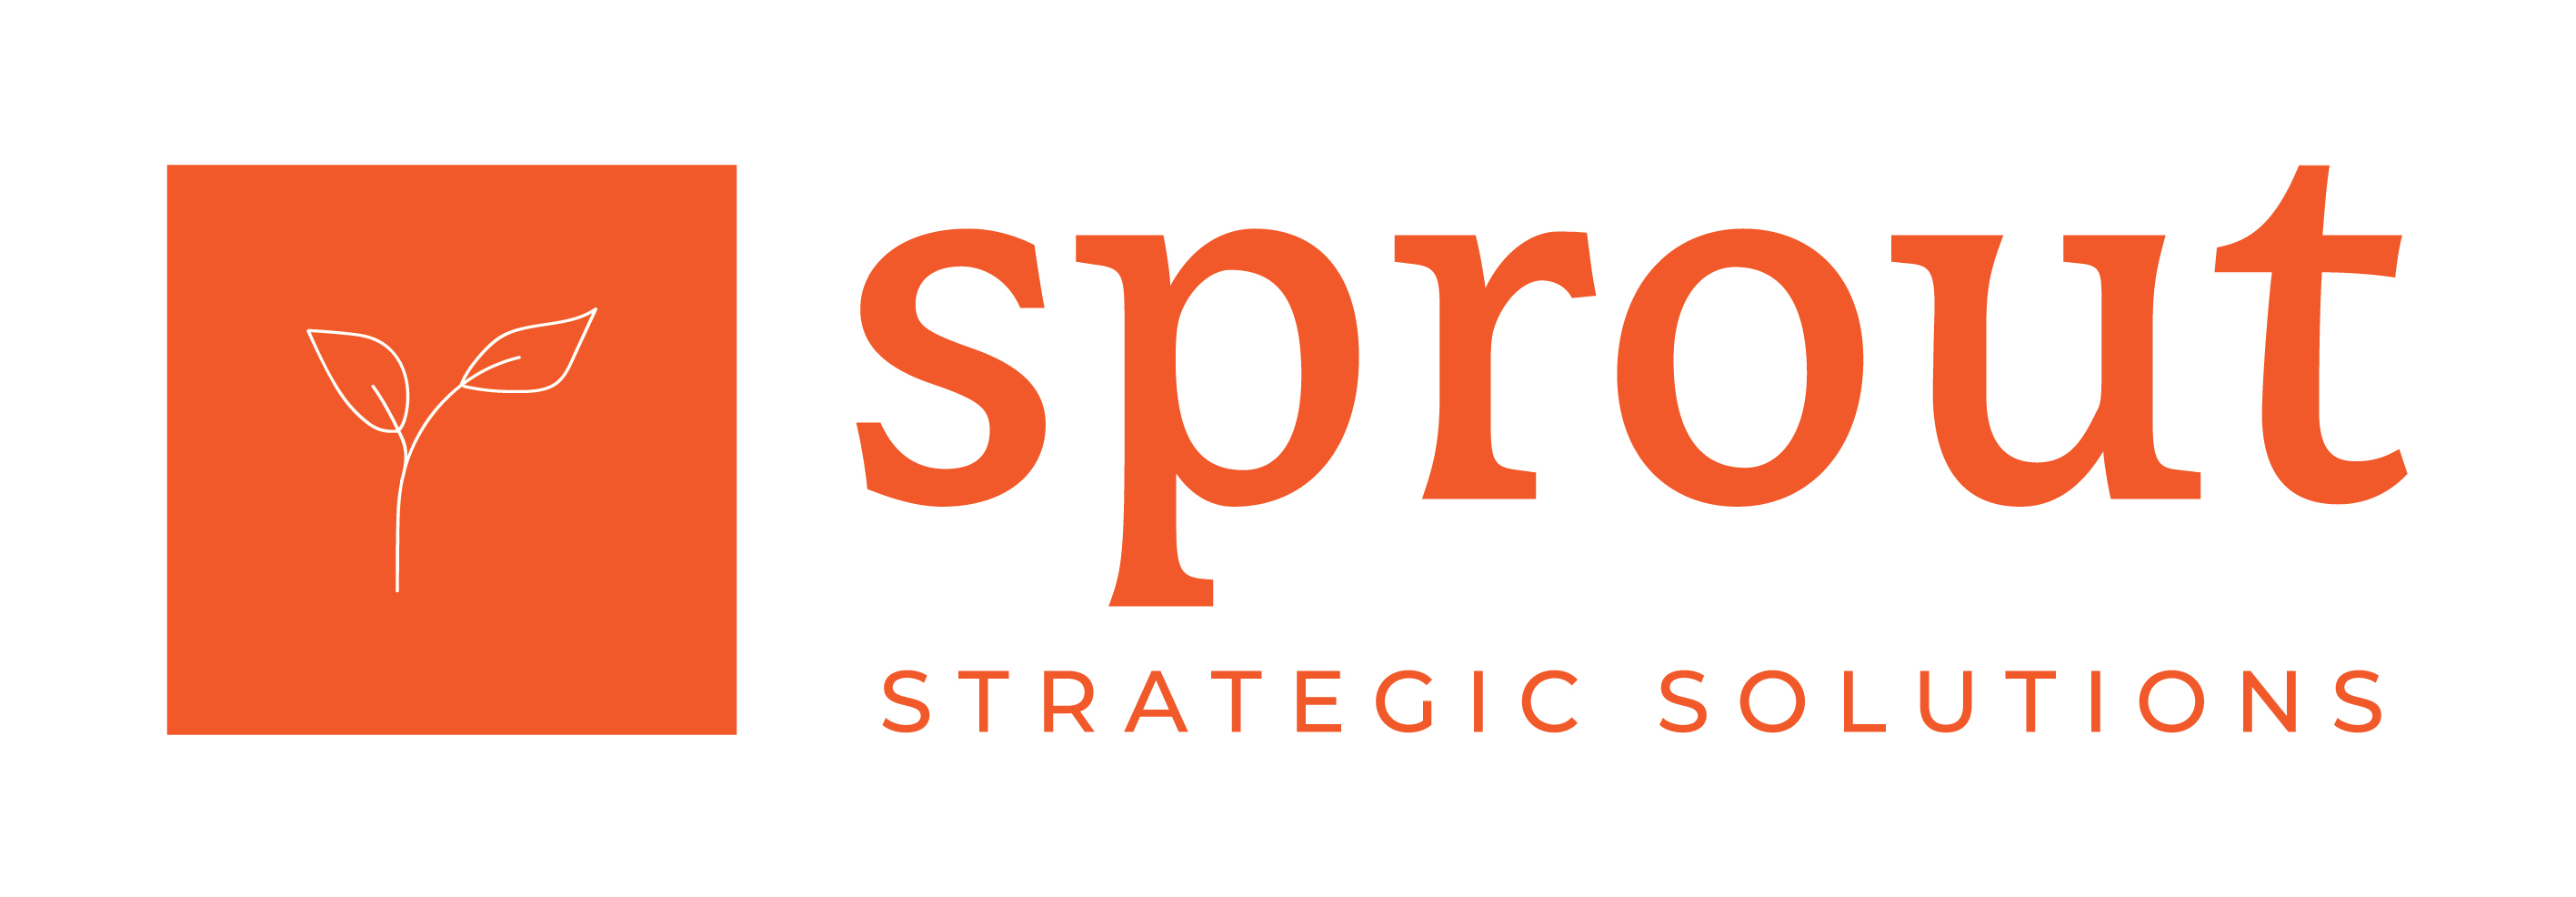 Sprout Strategic Solutions